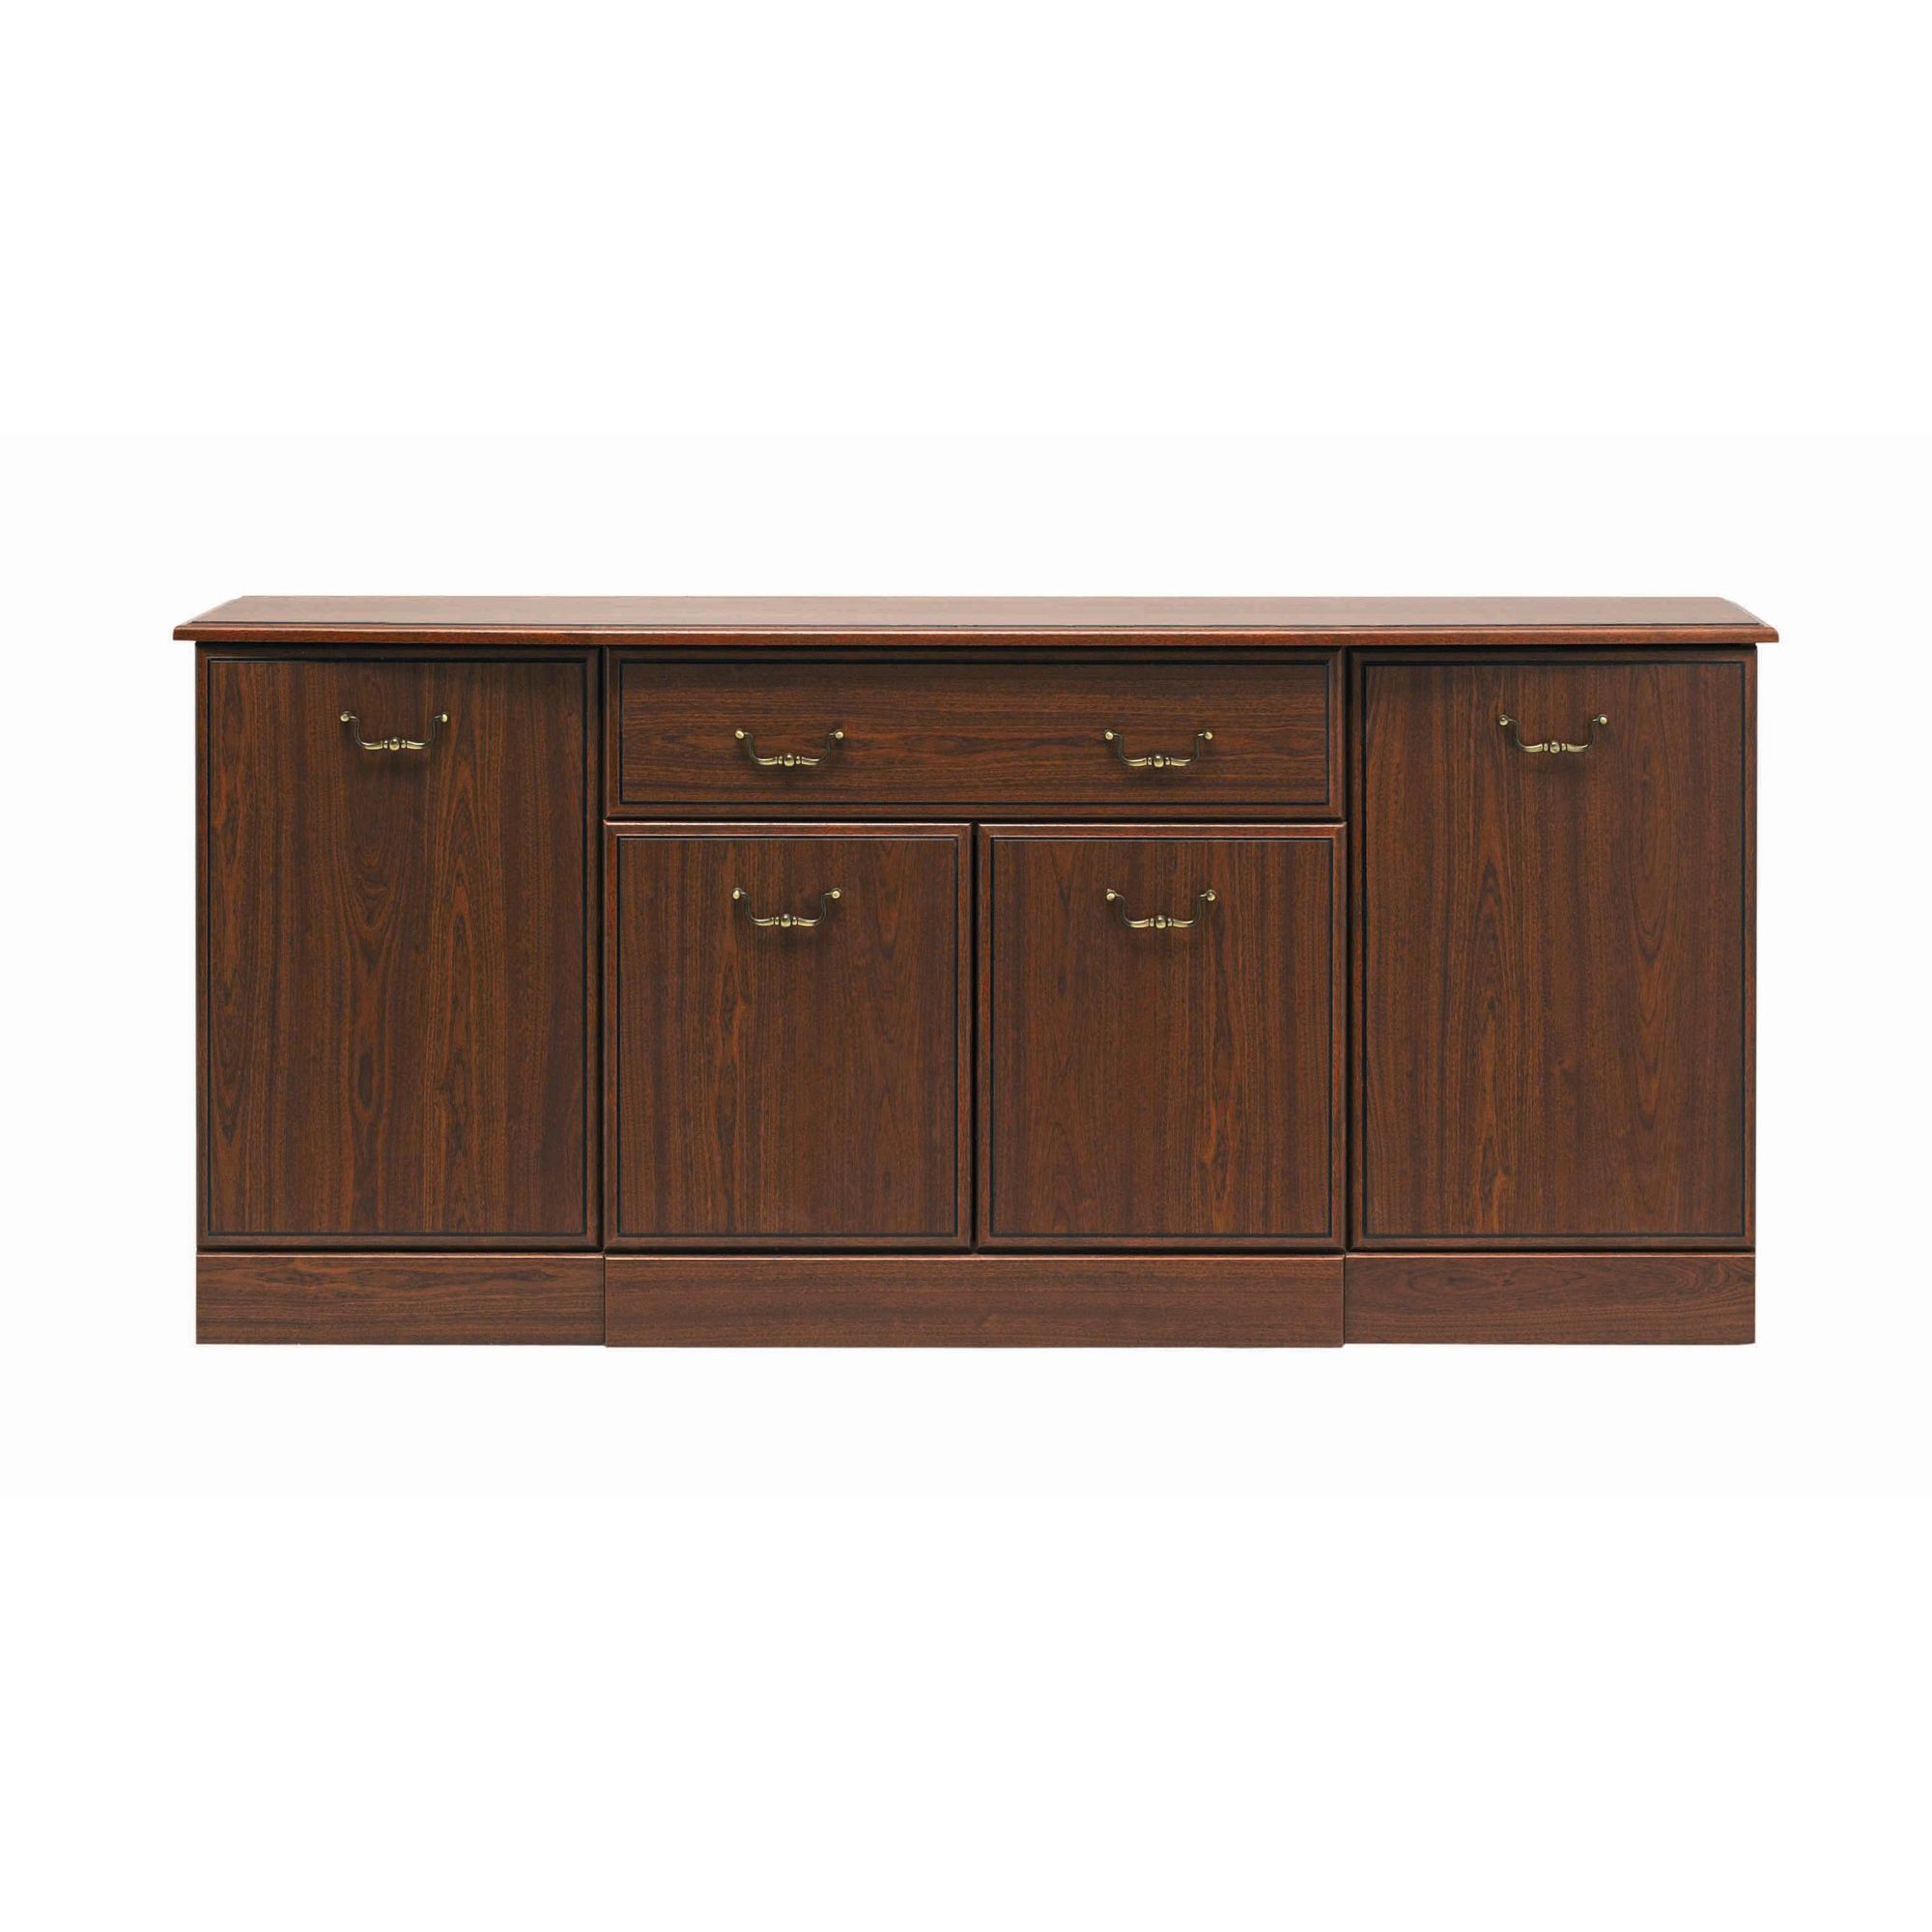 Caxton Byron Four Door Sideboard in Mahogany at Tesco Direct